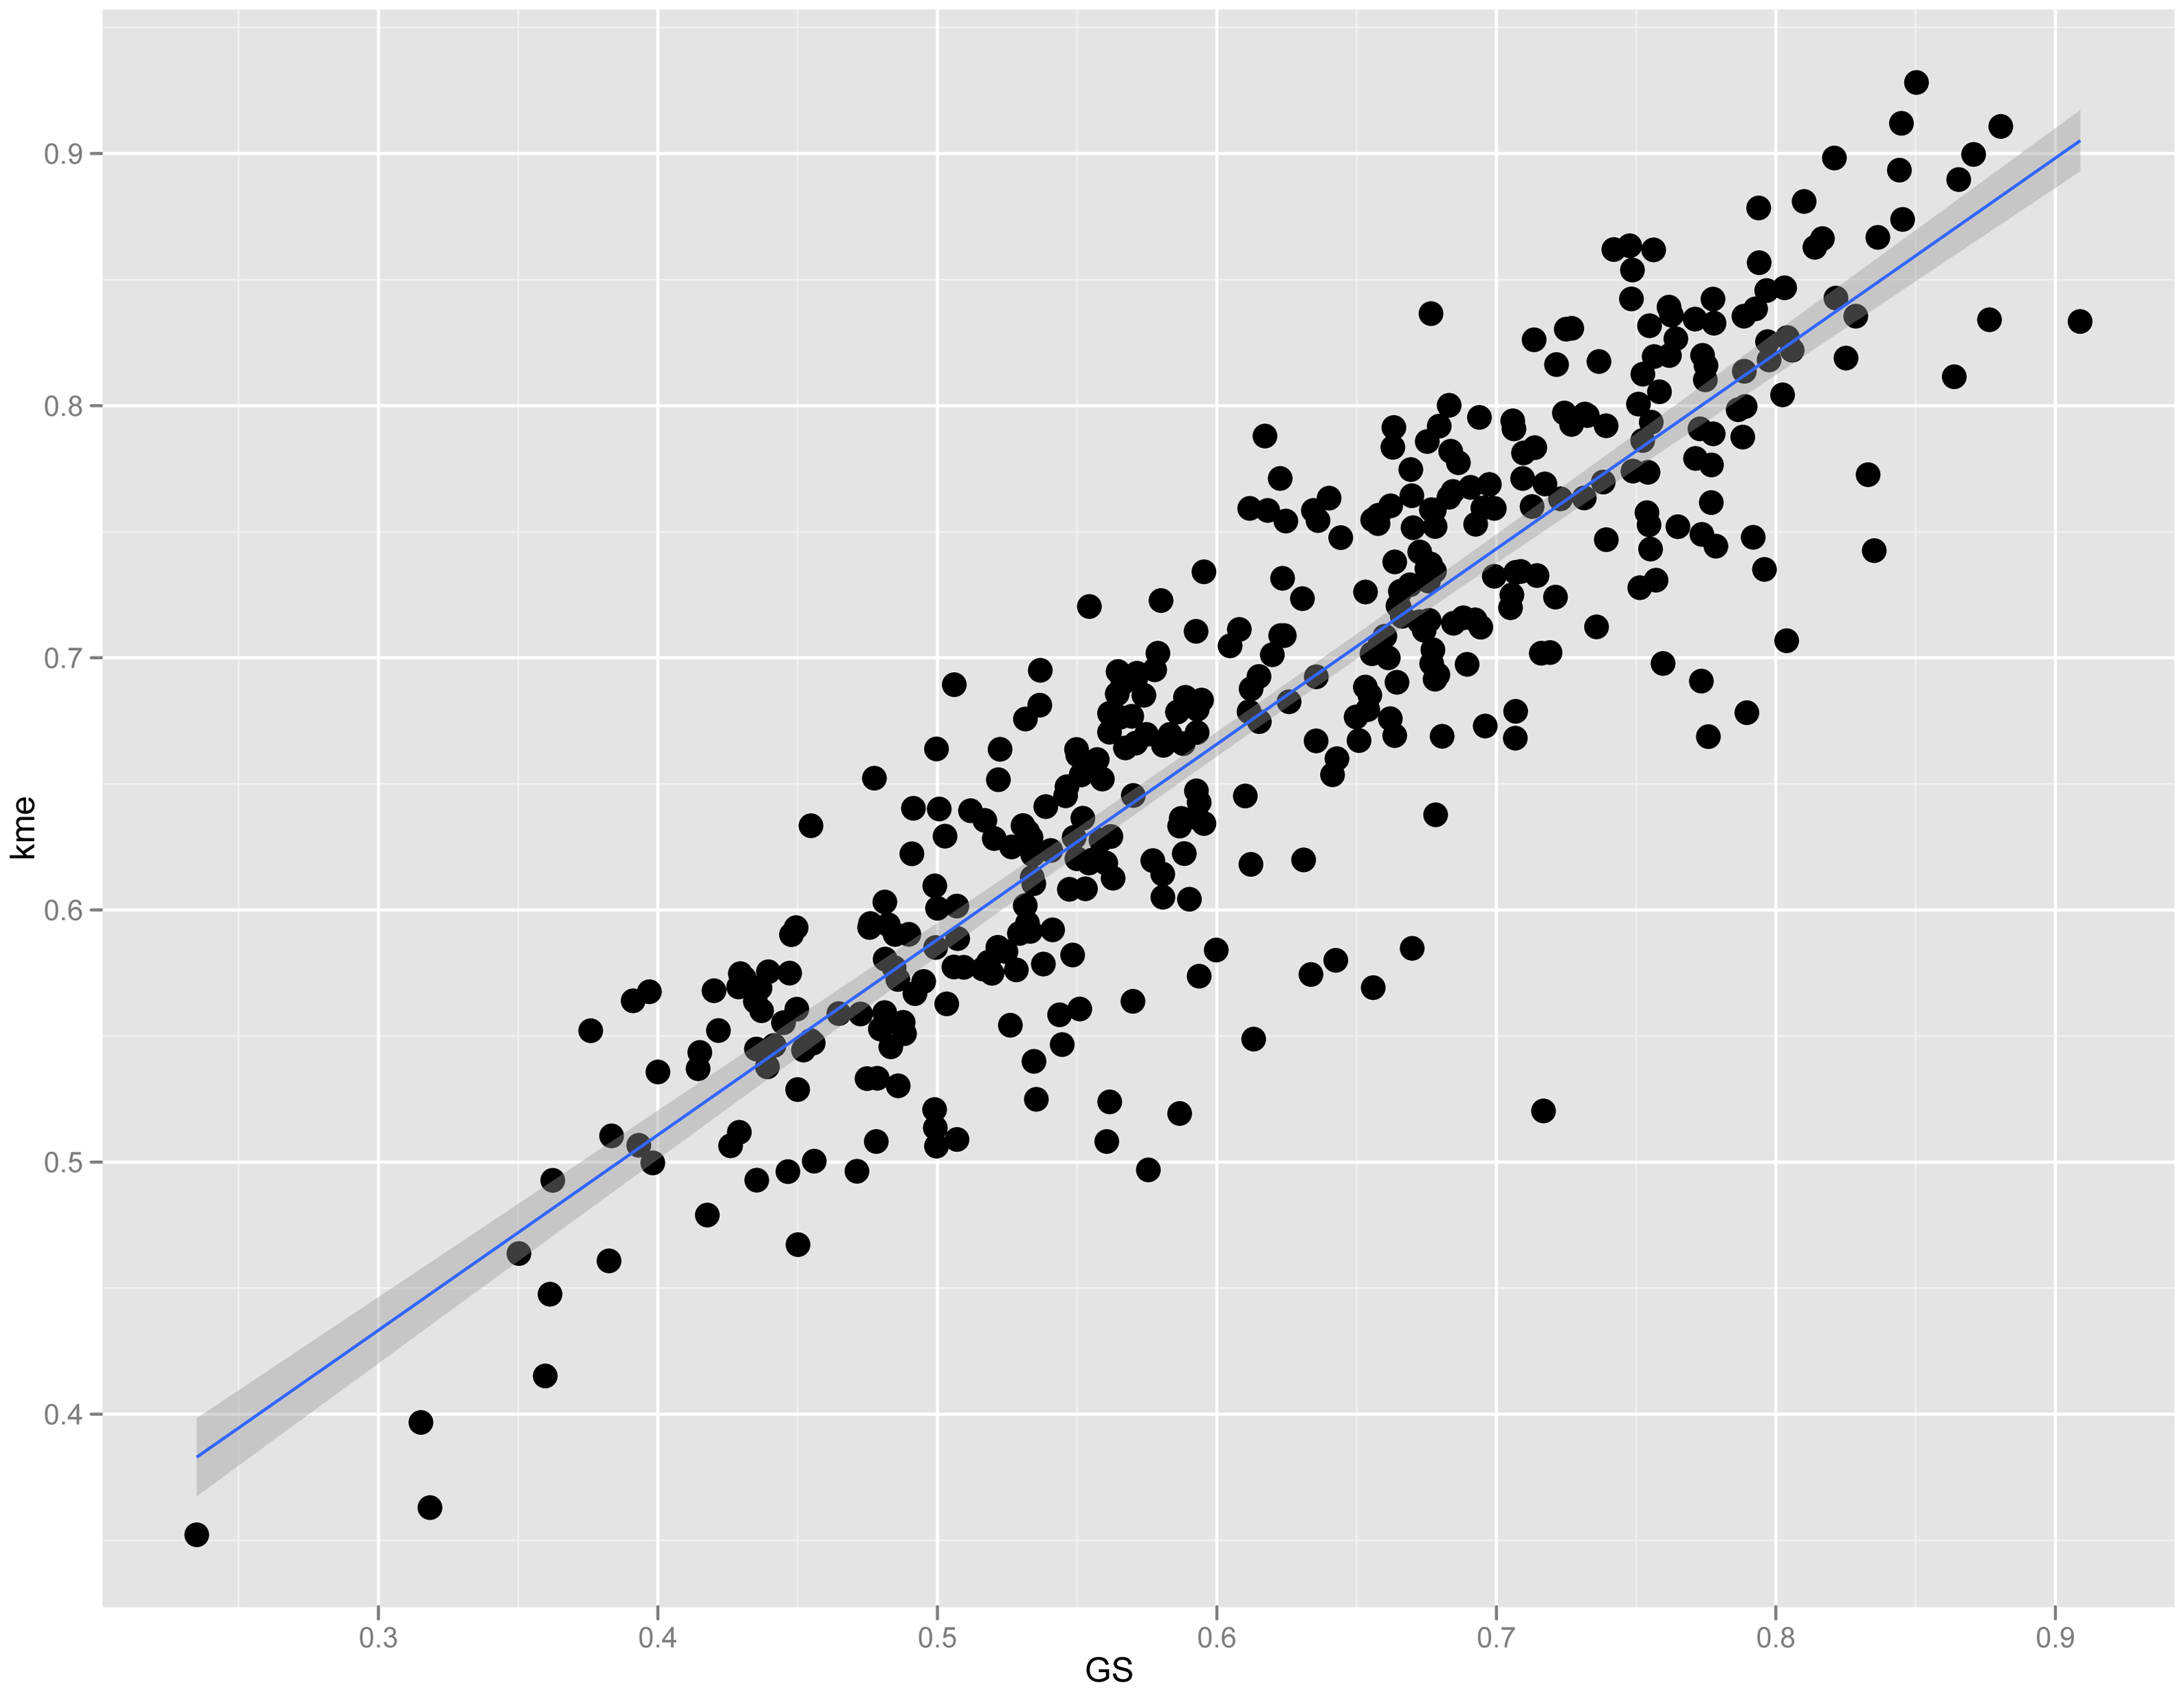 Connectivity is strongly correlated with GS in module 9.